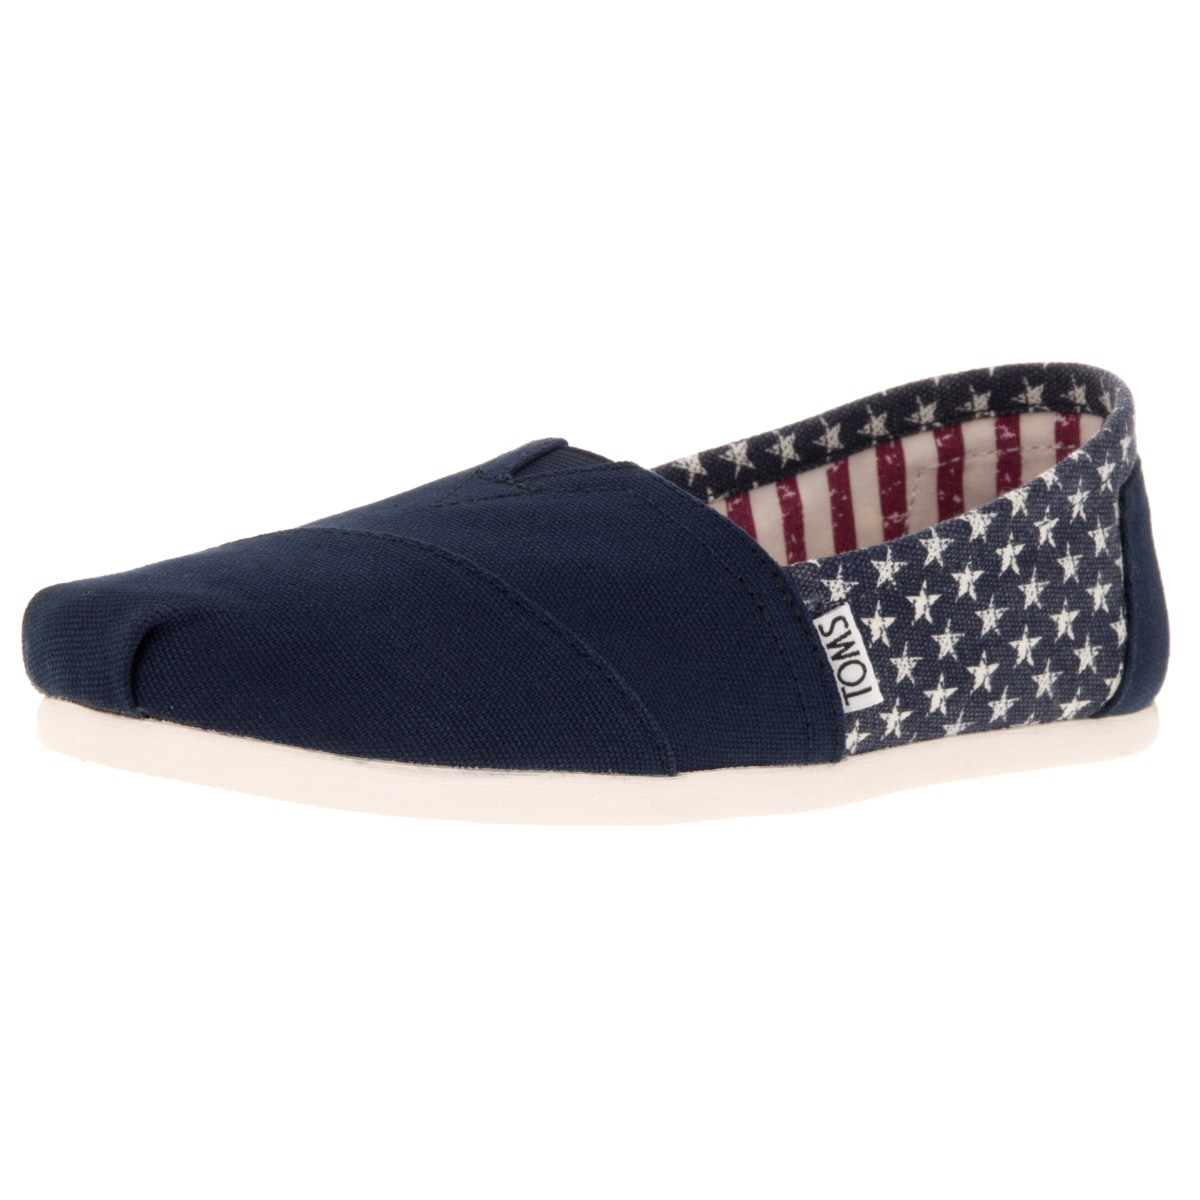 146d02998c1 Shop Toms Women s Classic Americana Navy Canvas Stars Casual Shoe - Free  Shipping Today - Overstock - 12330459